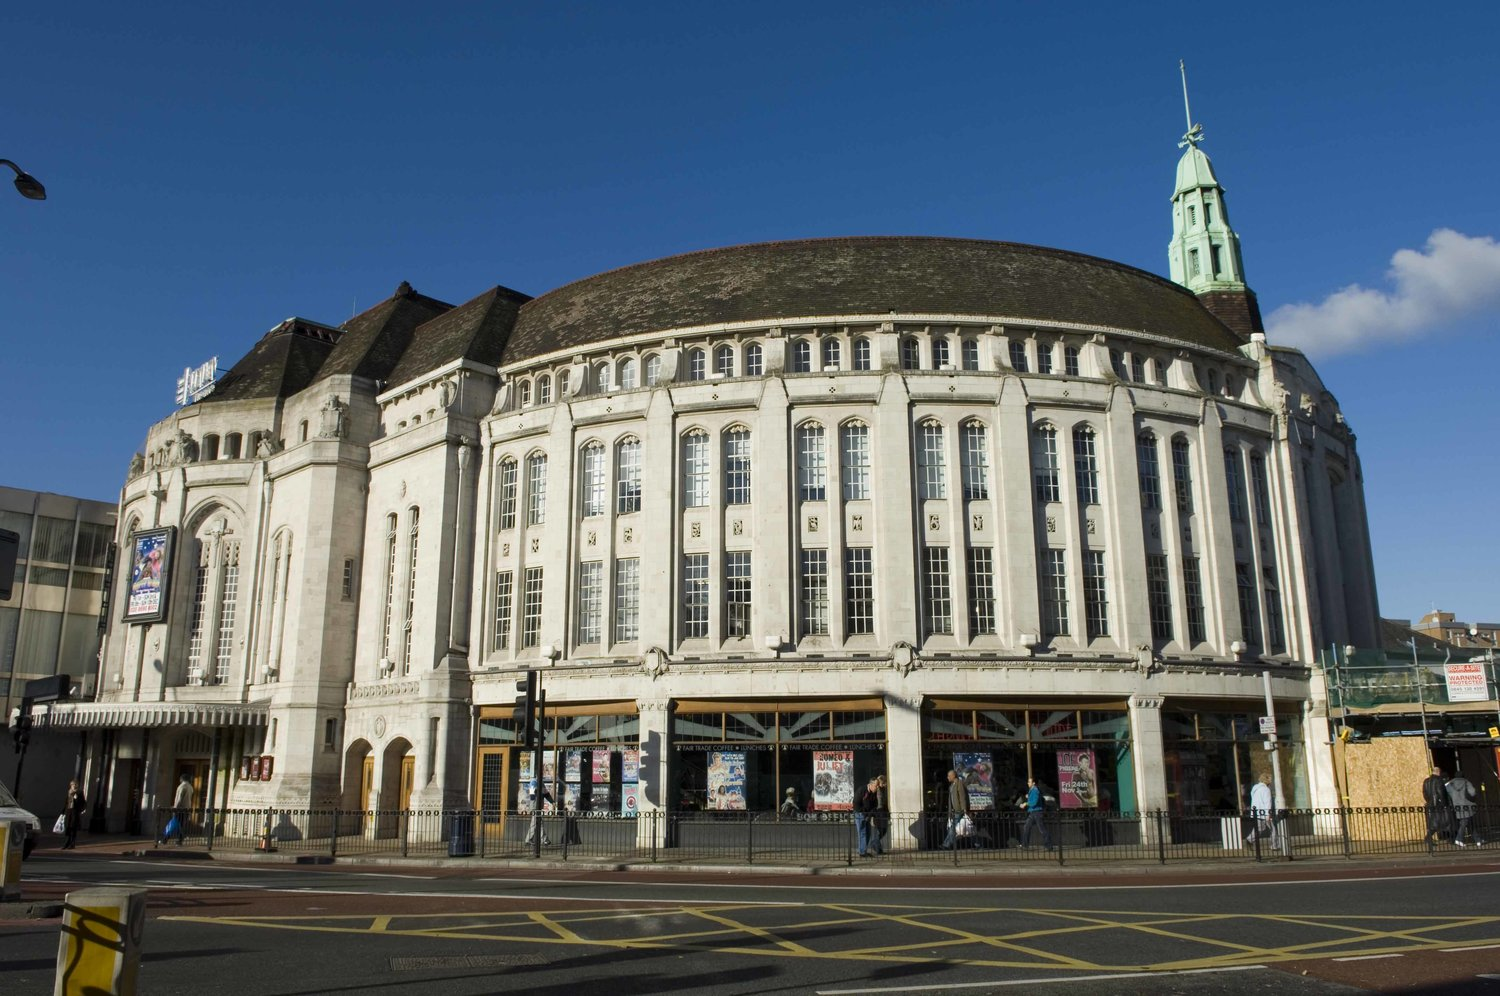 A Brief History of the Catford Broadway Theatre